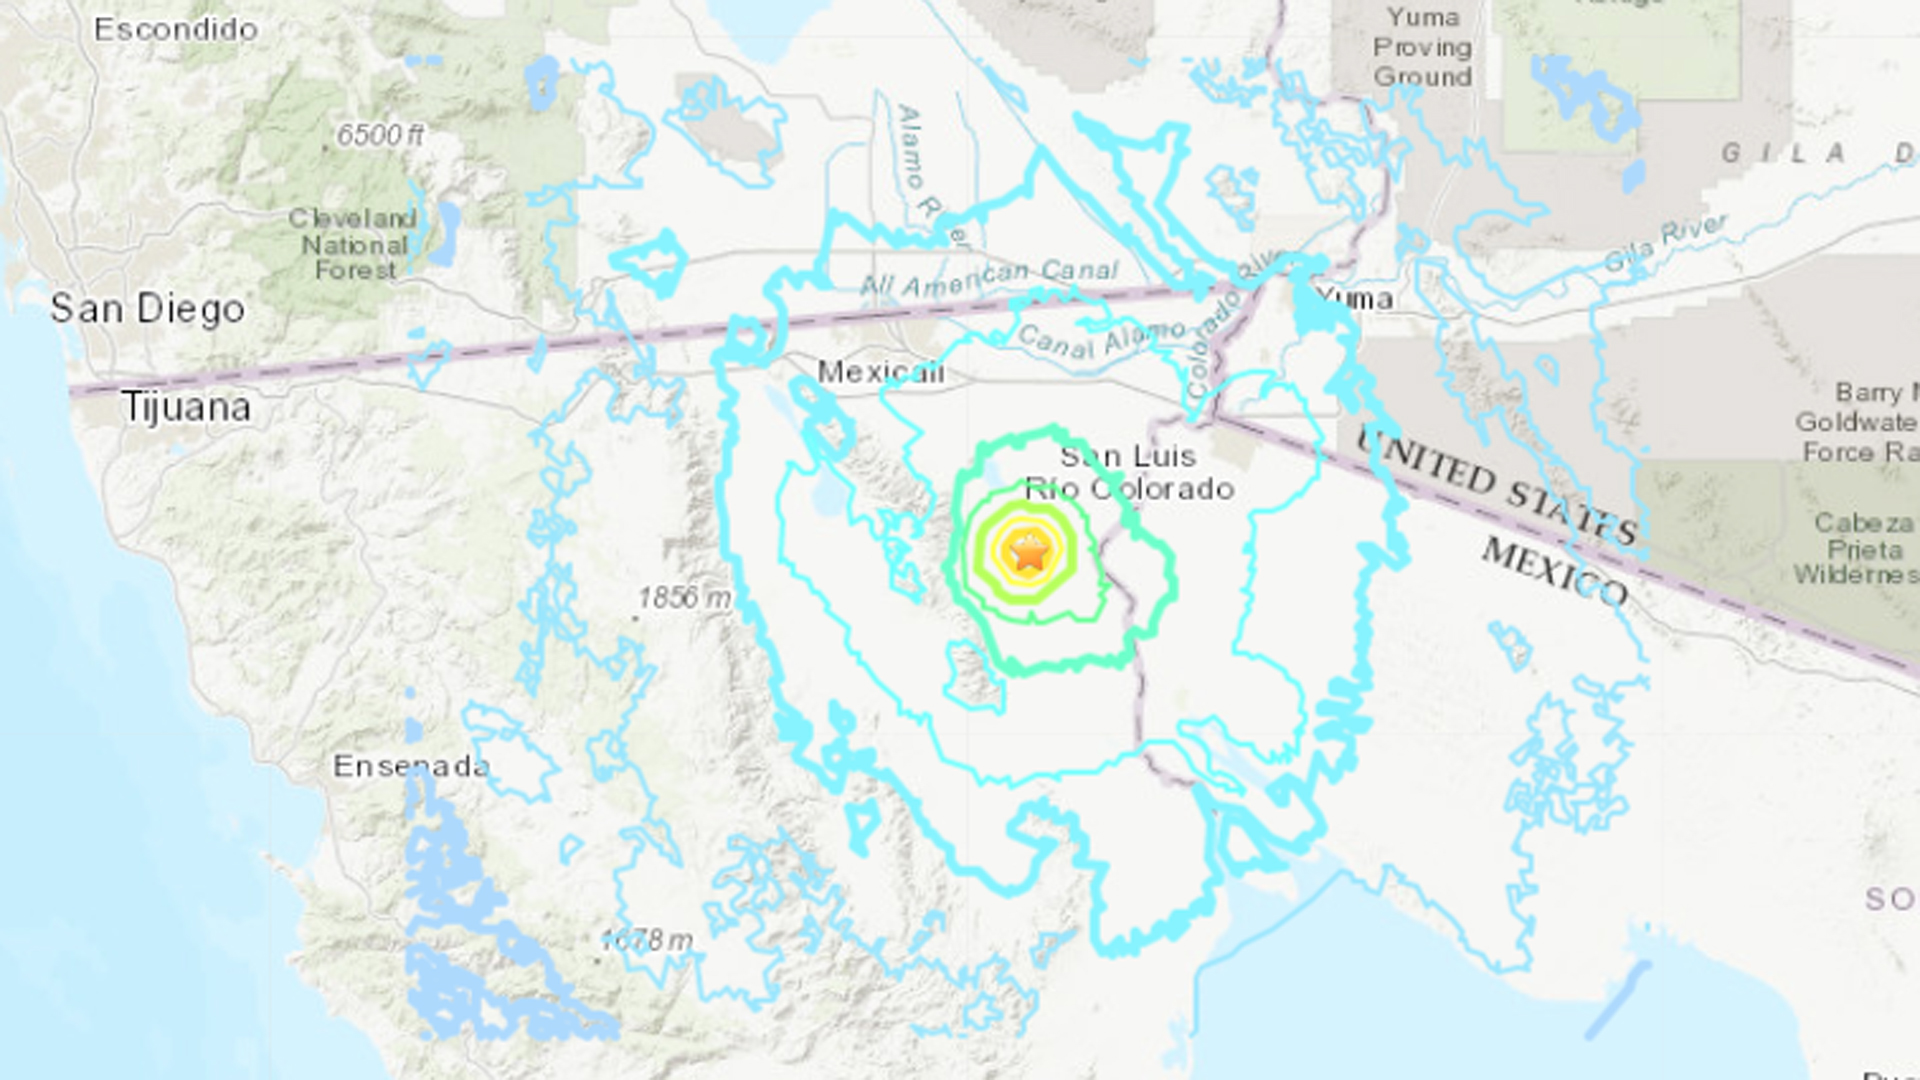 A 5.6 magnitude earthquake that hit northern Baja California on March 6, 2020, is seen in a map provided by the U.S. Geological Survey.